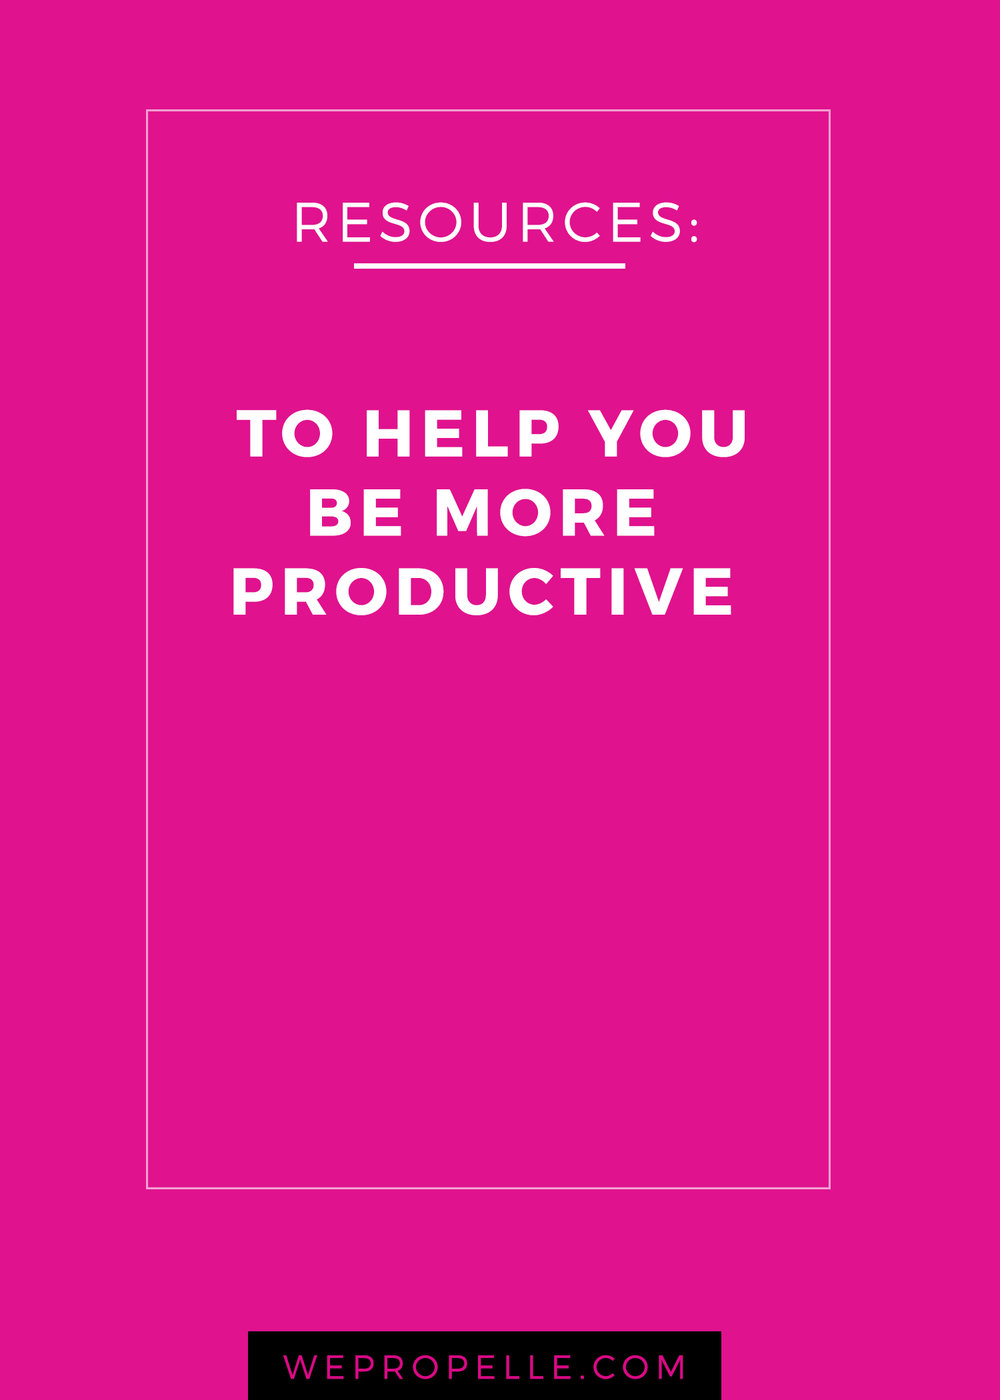 15 resources to help you be more productive | wepropelle.com